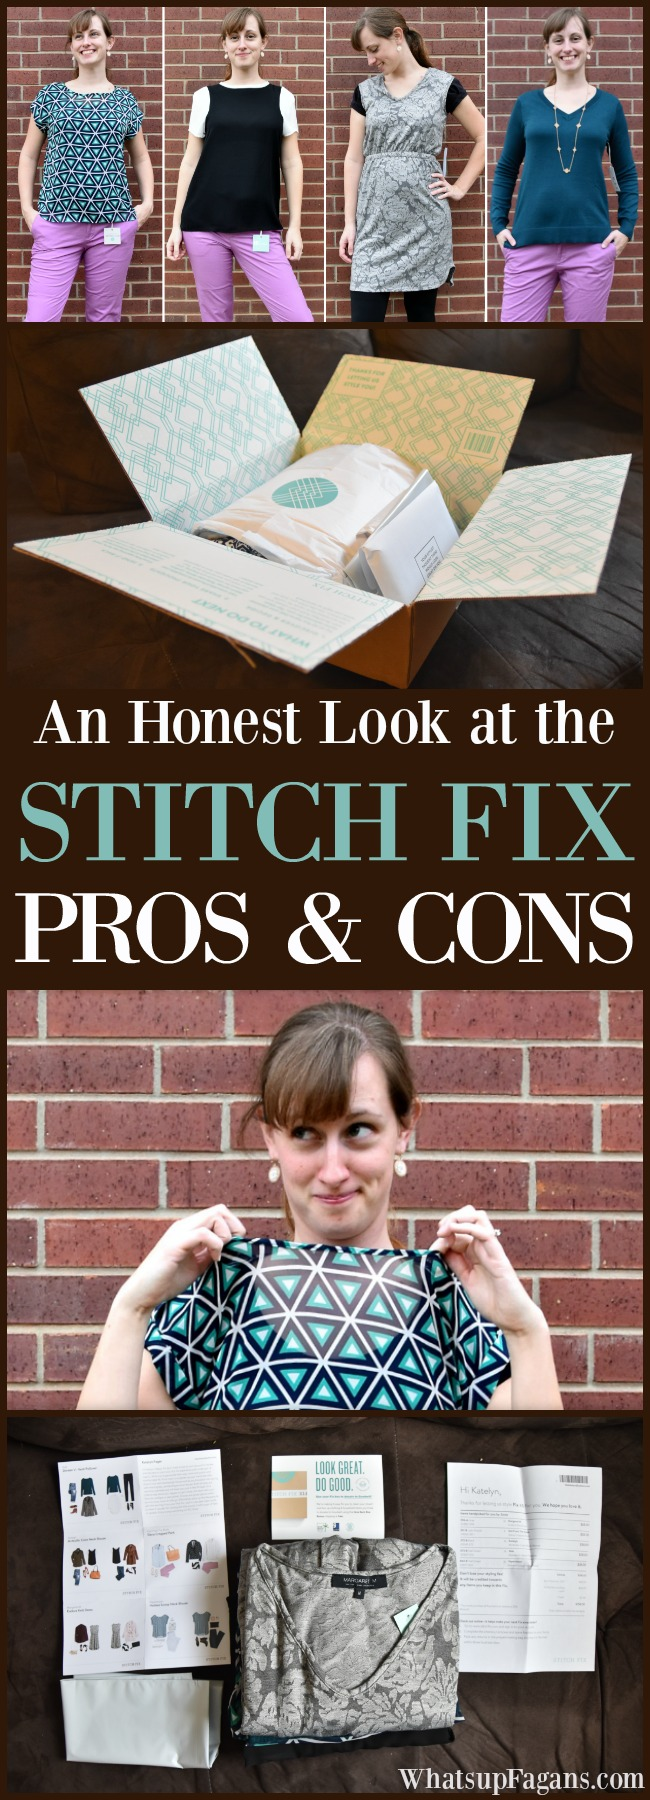 Stitch Fix Pros and Cons   Stitch Fix Cost  Negative Review Positive Review   Bad Review   Honest Review   Clothing Subscription box   Fashion   Style   Personal Stylist   Trends   Wardrobe   Examples   Unboxing